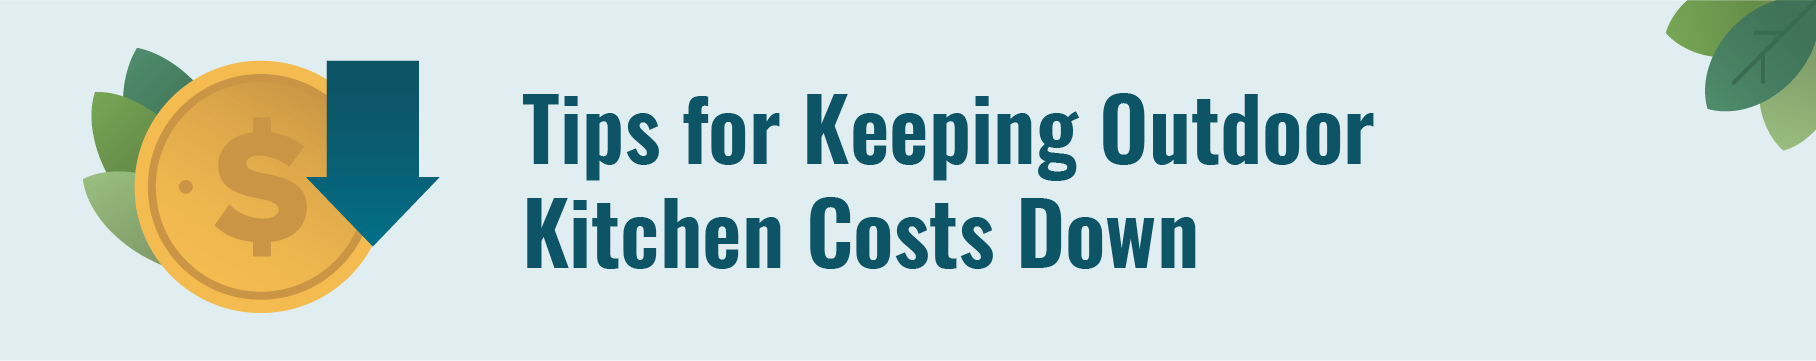 Tips for keeping outdoor kitchen costs down